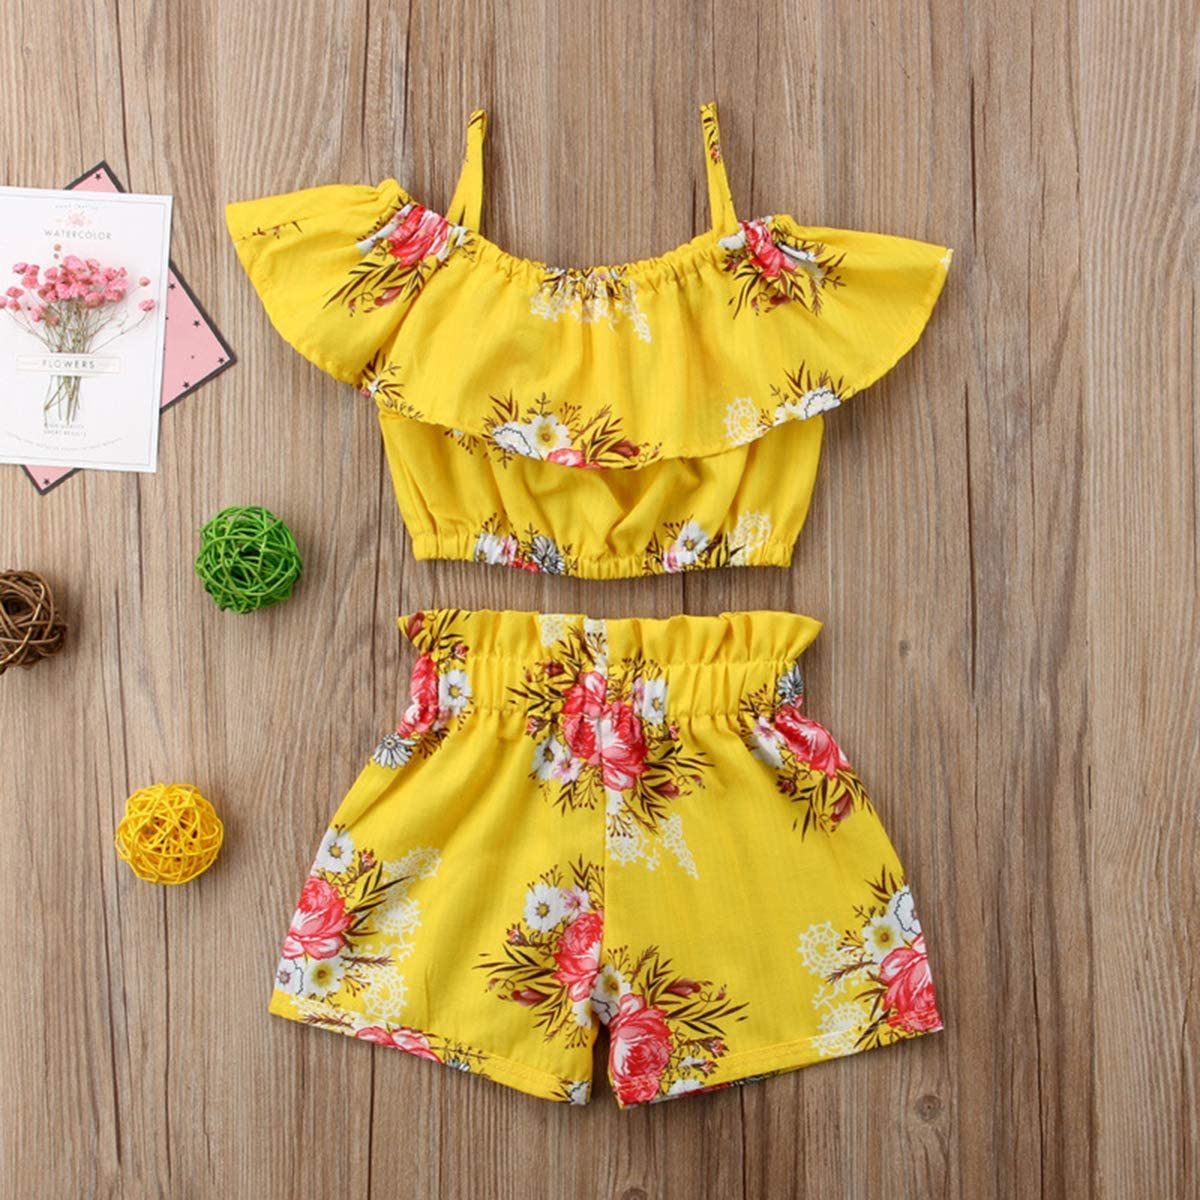 NOMSOCR Toddler Kids Baby Girl 2Pcs Outfit Clothes Set Suspender T-Shirt Top Short Pant